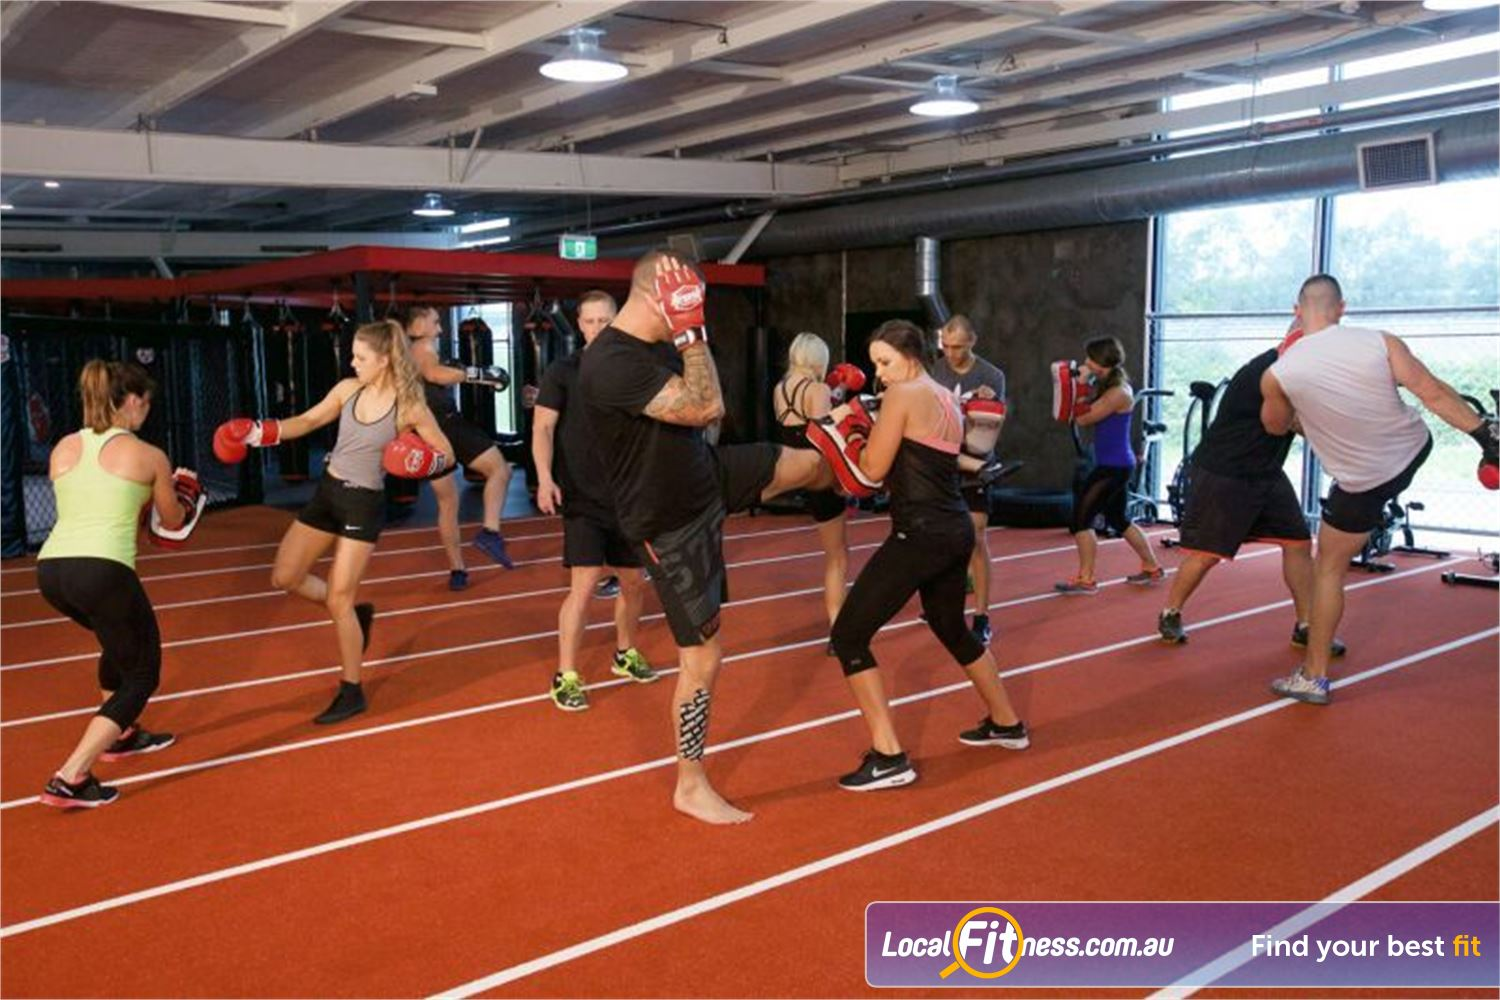 Goodlife Health Clubs Carindale Carindale Arena Fitness MMA - classes inspired by MMA and Boxing.